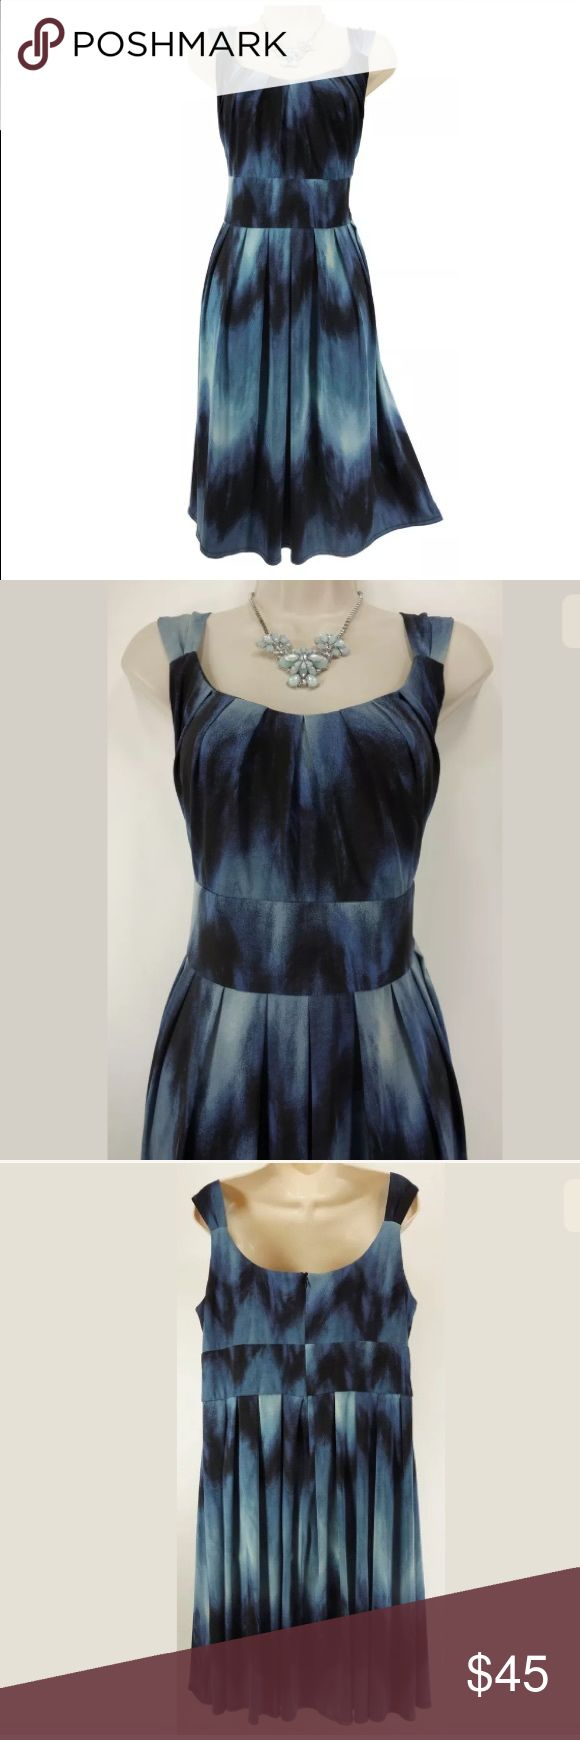 """18W 2X▪️BLUE OMBRÉ PLEATED SUMMER DRESS Plus Size This gorgeous ombre dress is sexy, trendy, and fashionable!   Size: 18W Back zip Pleated style Beautiful blue ombre print Stretchy, super comfortable fabric Measurements: Bust (armpit to armpit):  45"""" relaxed - stretches to 52"""" Waist: 43"""" relaxed - stretches to 46"""" Hips:  72"""" relaxed Length: 41"""" (top of shoulder to bottom hem)  Condition: PRISTINE CONDITION! Fabric Content: 95% Polyester  5% Spandex Fabric Care:  Hand Wash Dress Barn Dresses"""